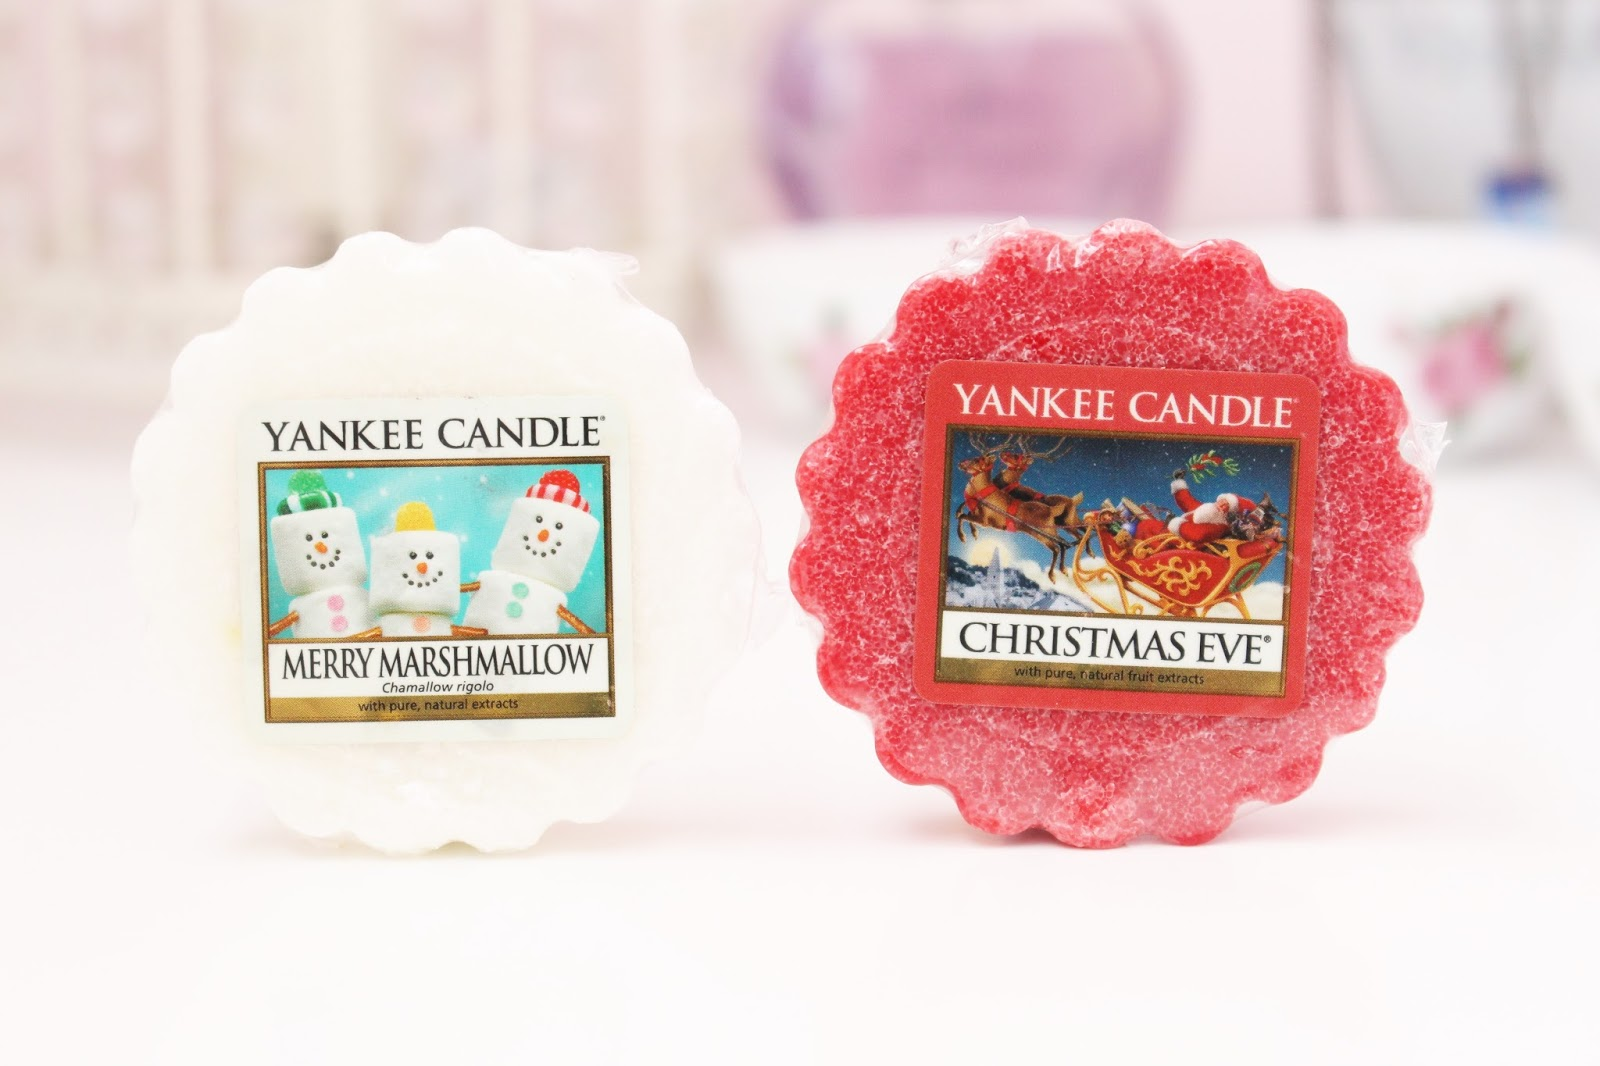 Yankee Candle Merry Marshmallow and Christmas Eve Wax Tarts